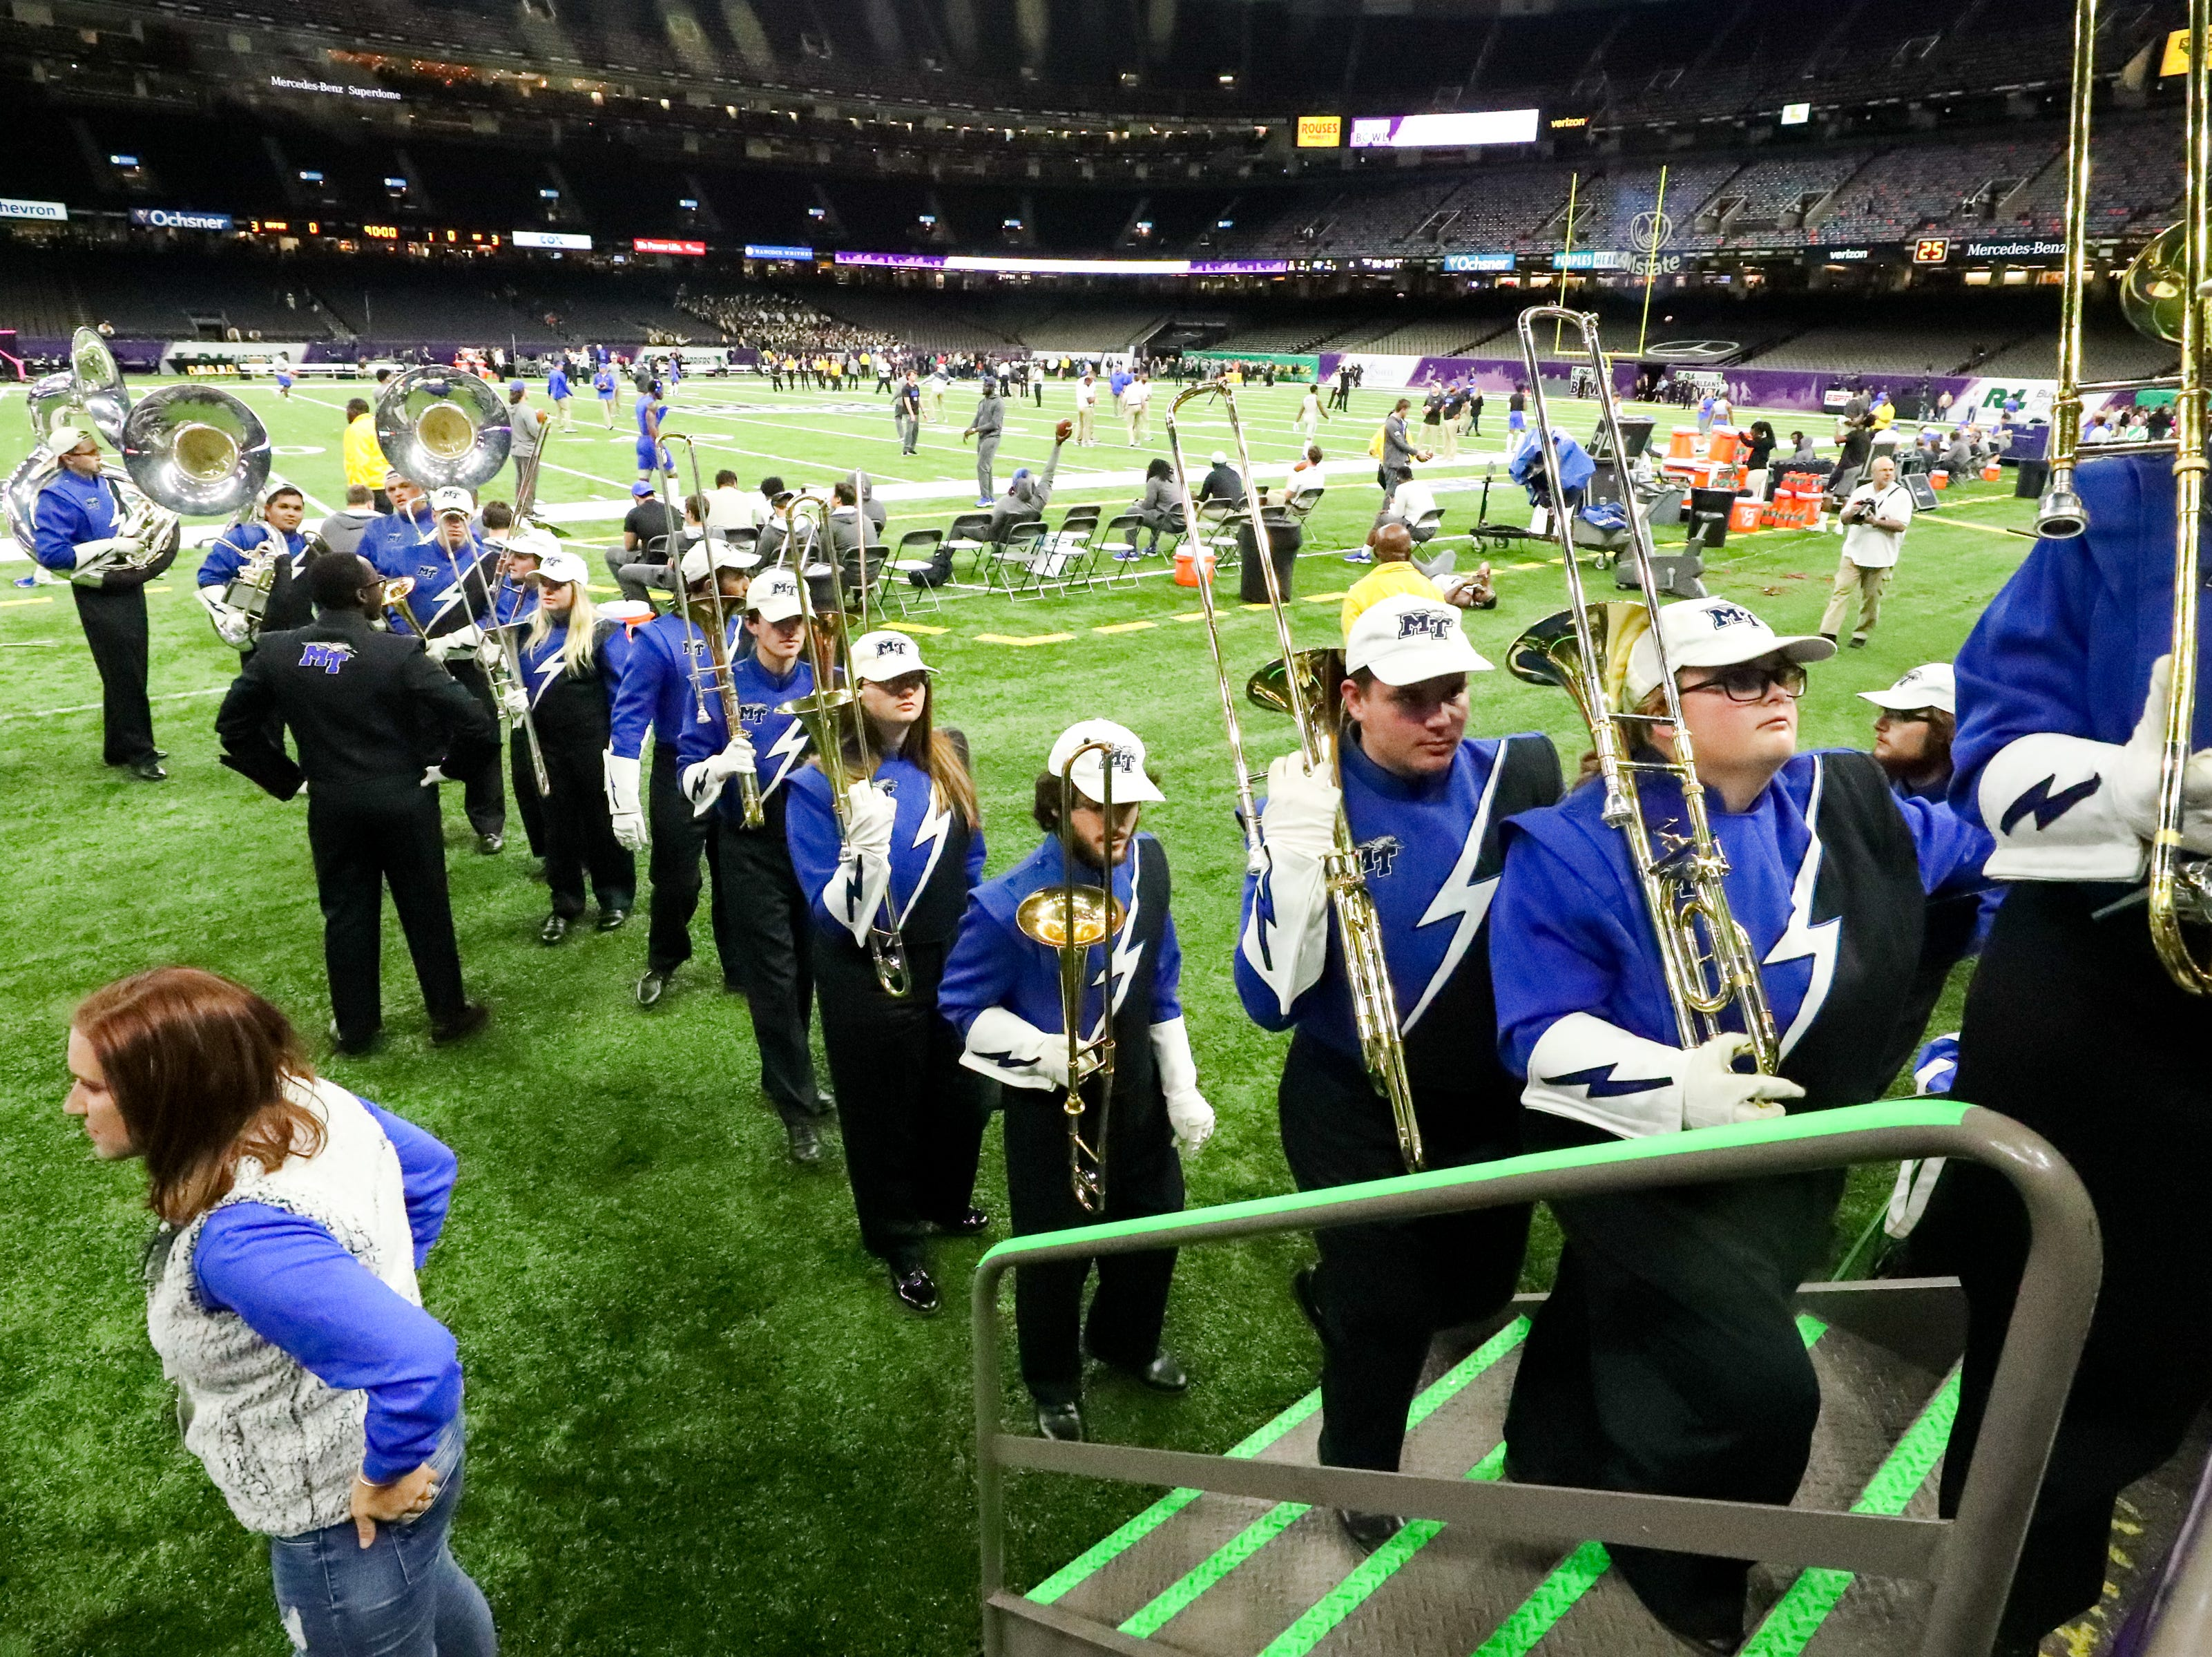 The Middle Tennessee Blue Raiders band enters the stands before the game at the Mercedes-Benz Superdome Saturday, Dec. 15, 2018, in New Orleans, La.